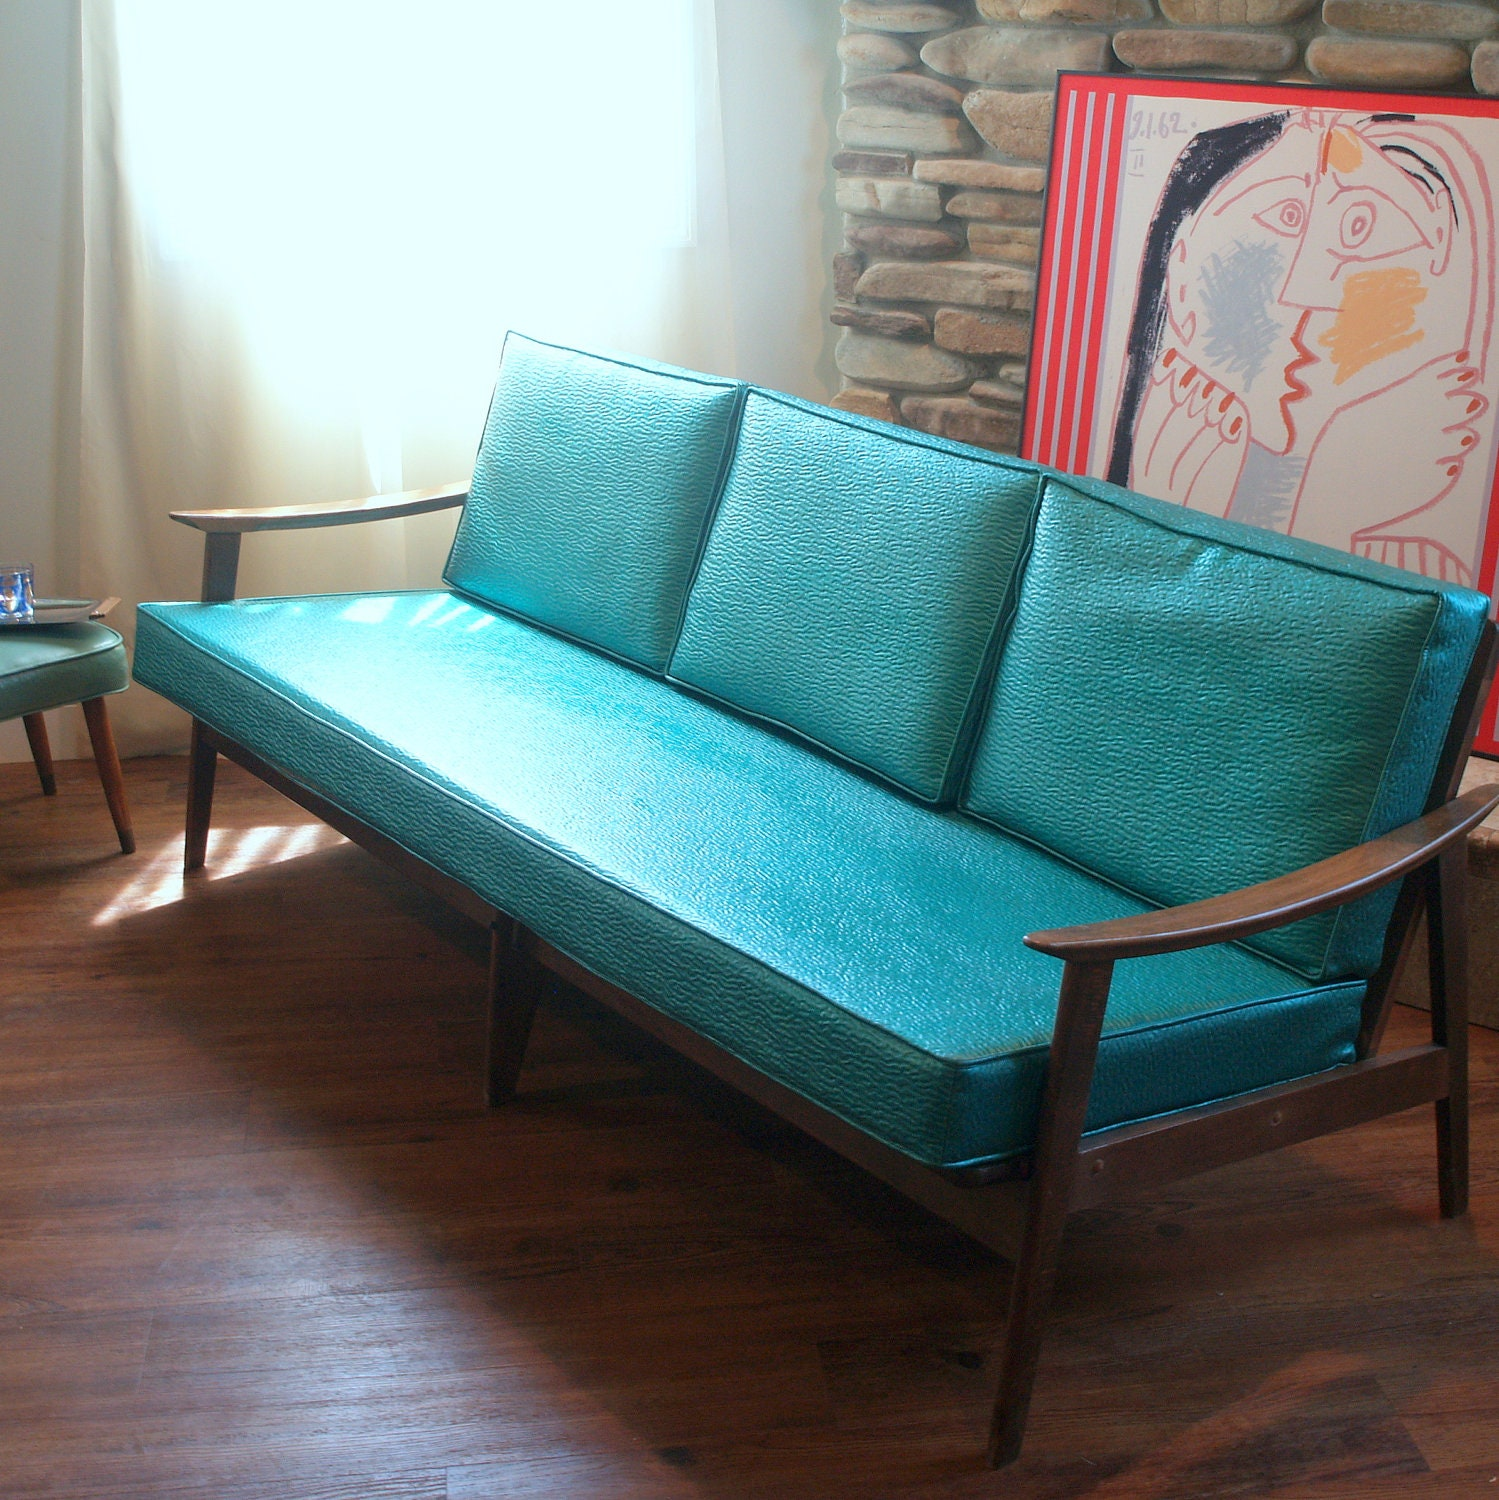 VINTAGE DANISH MODERN Sofa Lovely 1950's Mid By